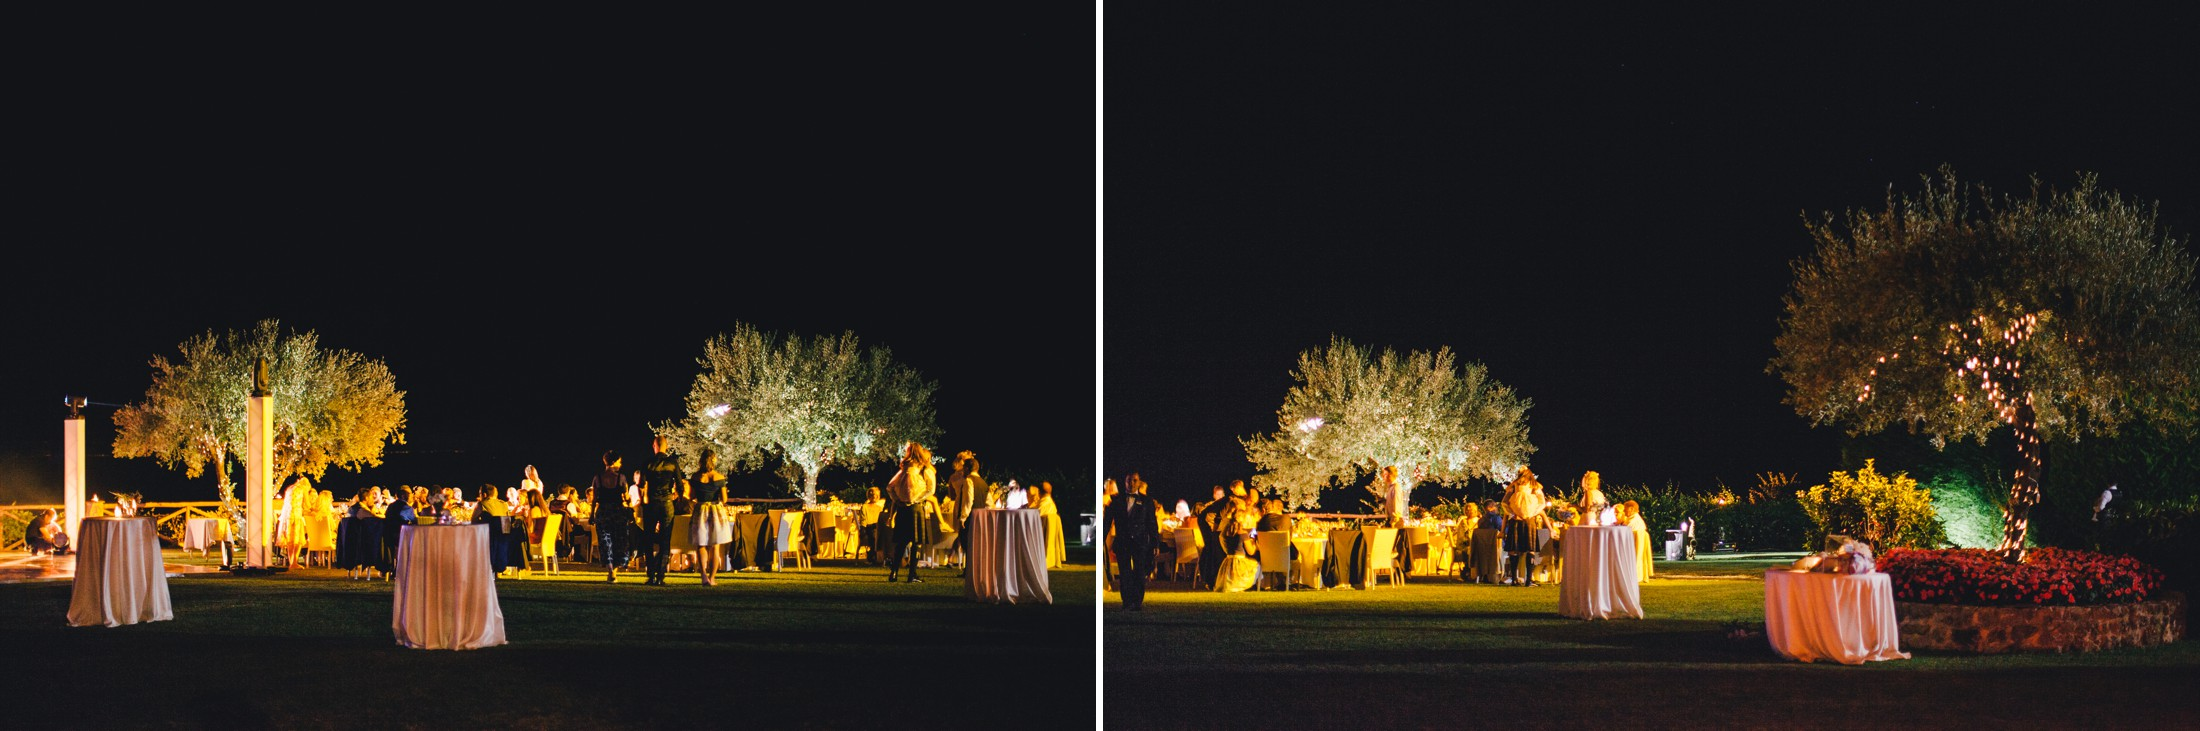 collage wedding dinner at villa cimbrone ravello at night time